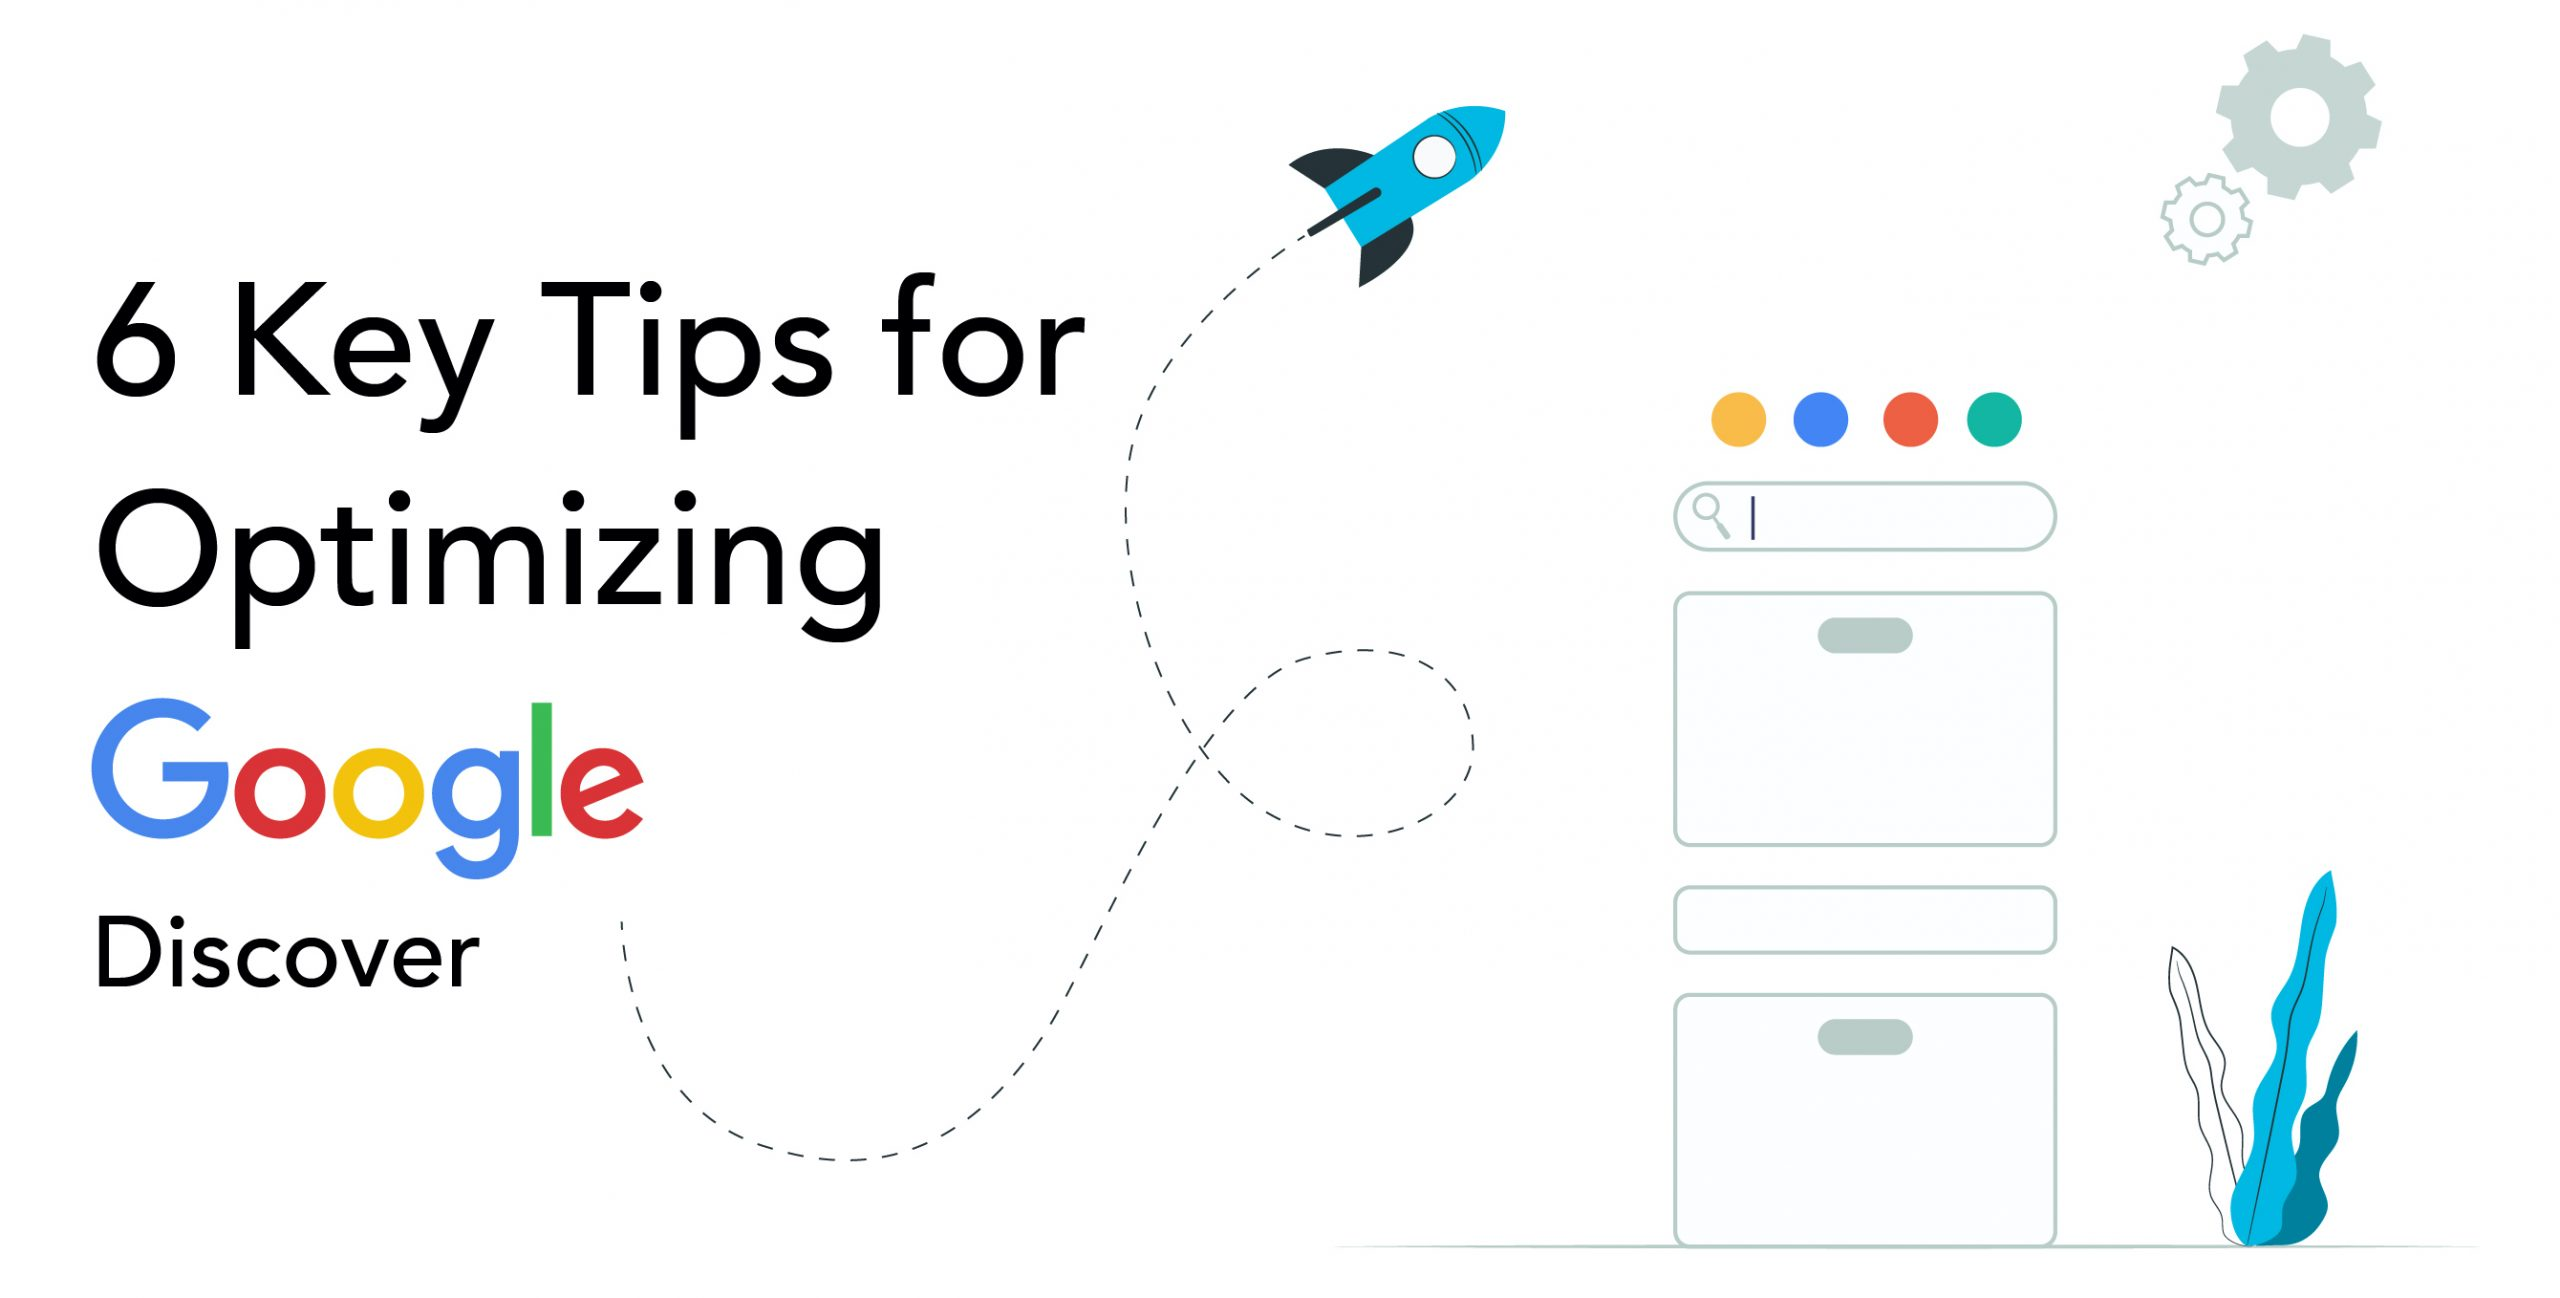 6 Key Tips for Optimizing Google Discover